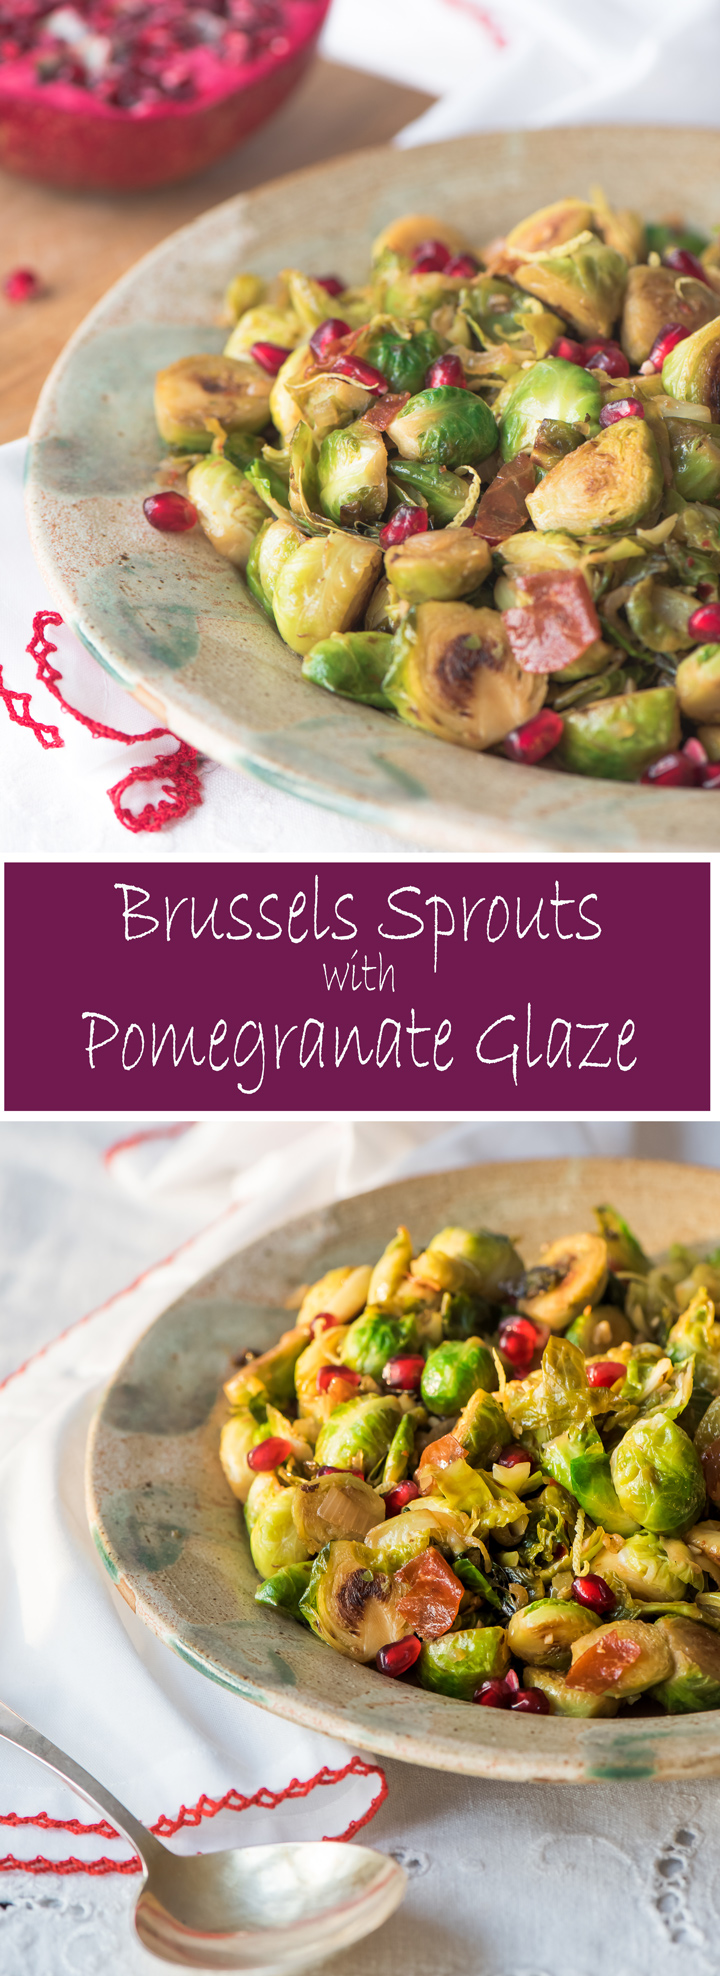 How to cook Brussels sprouts . Brussels sprouts are seared in a skillet then braised until tender. They are finished with a glaze of butter and pomegranate molasses.